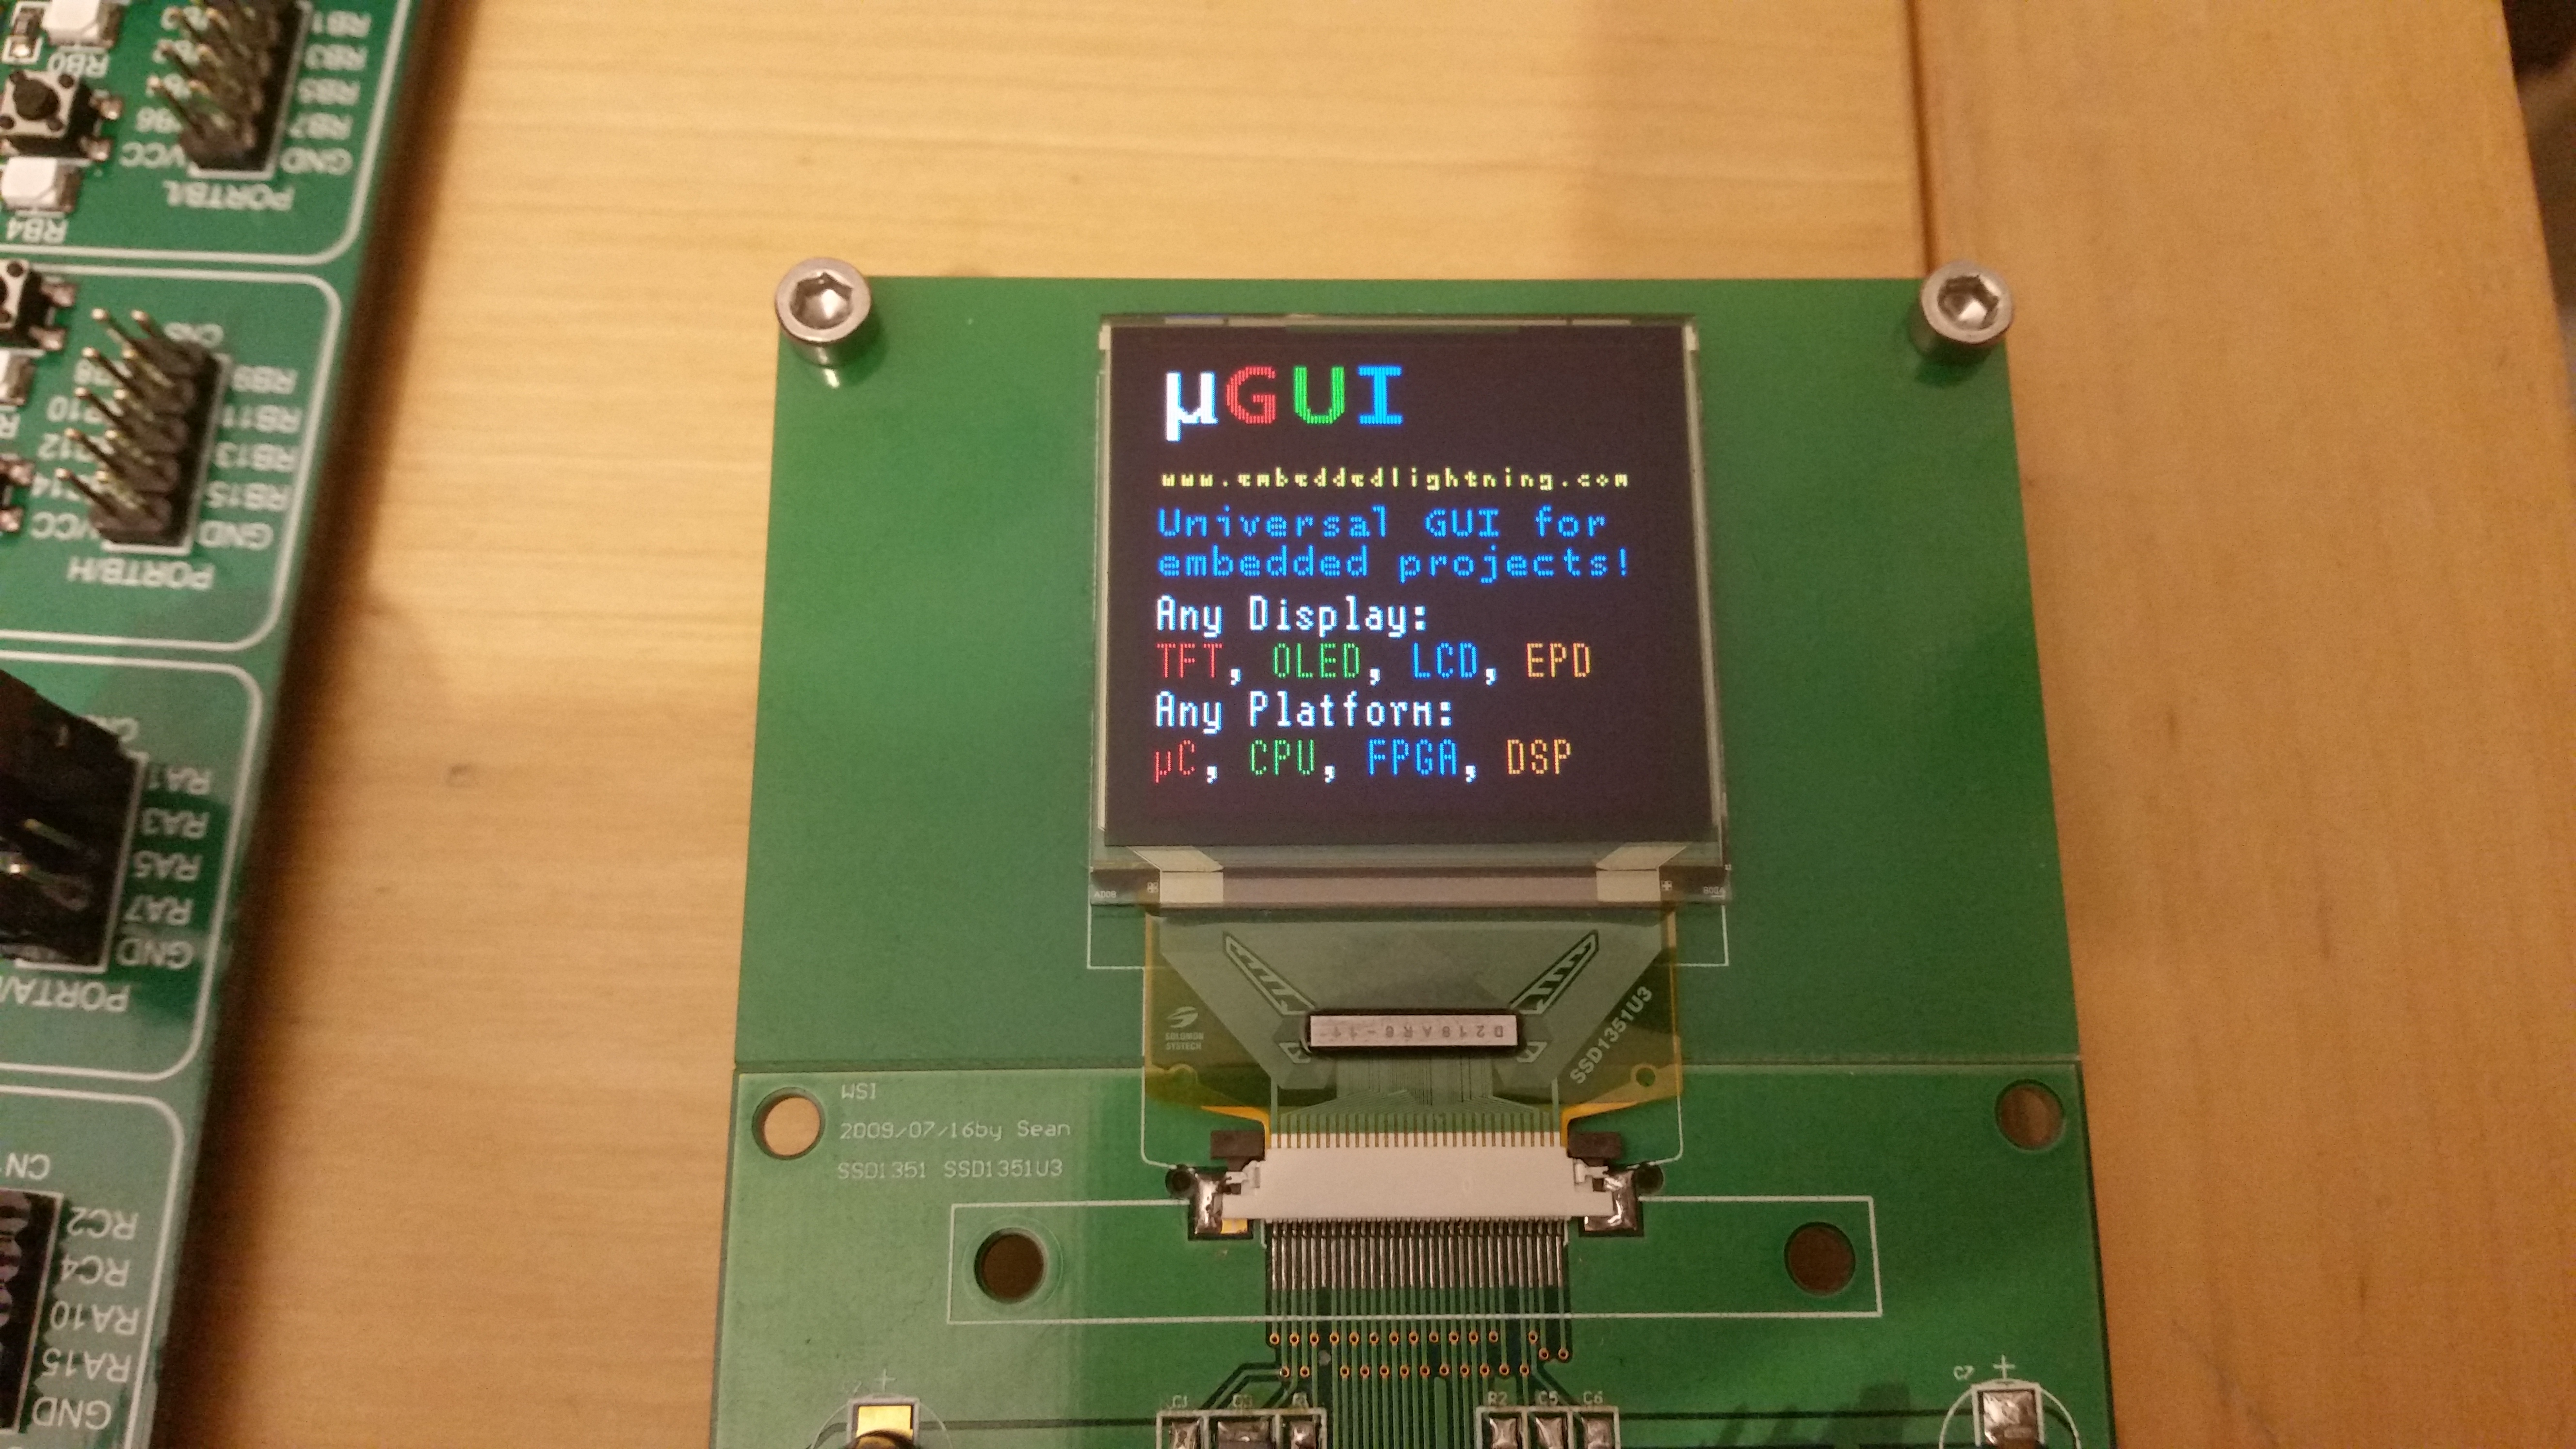 μGUI - free Open Source GUI module for embedded systems